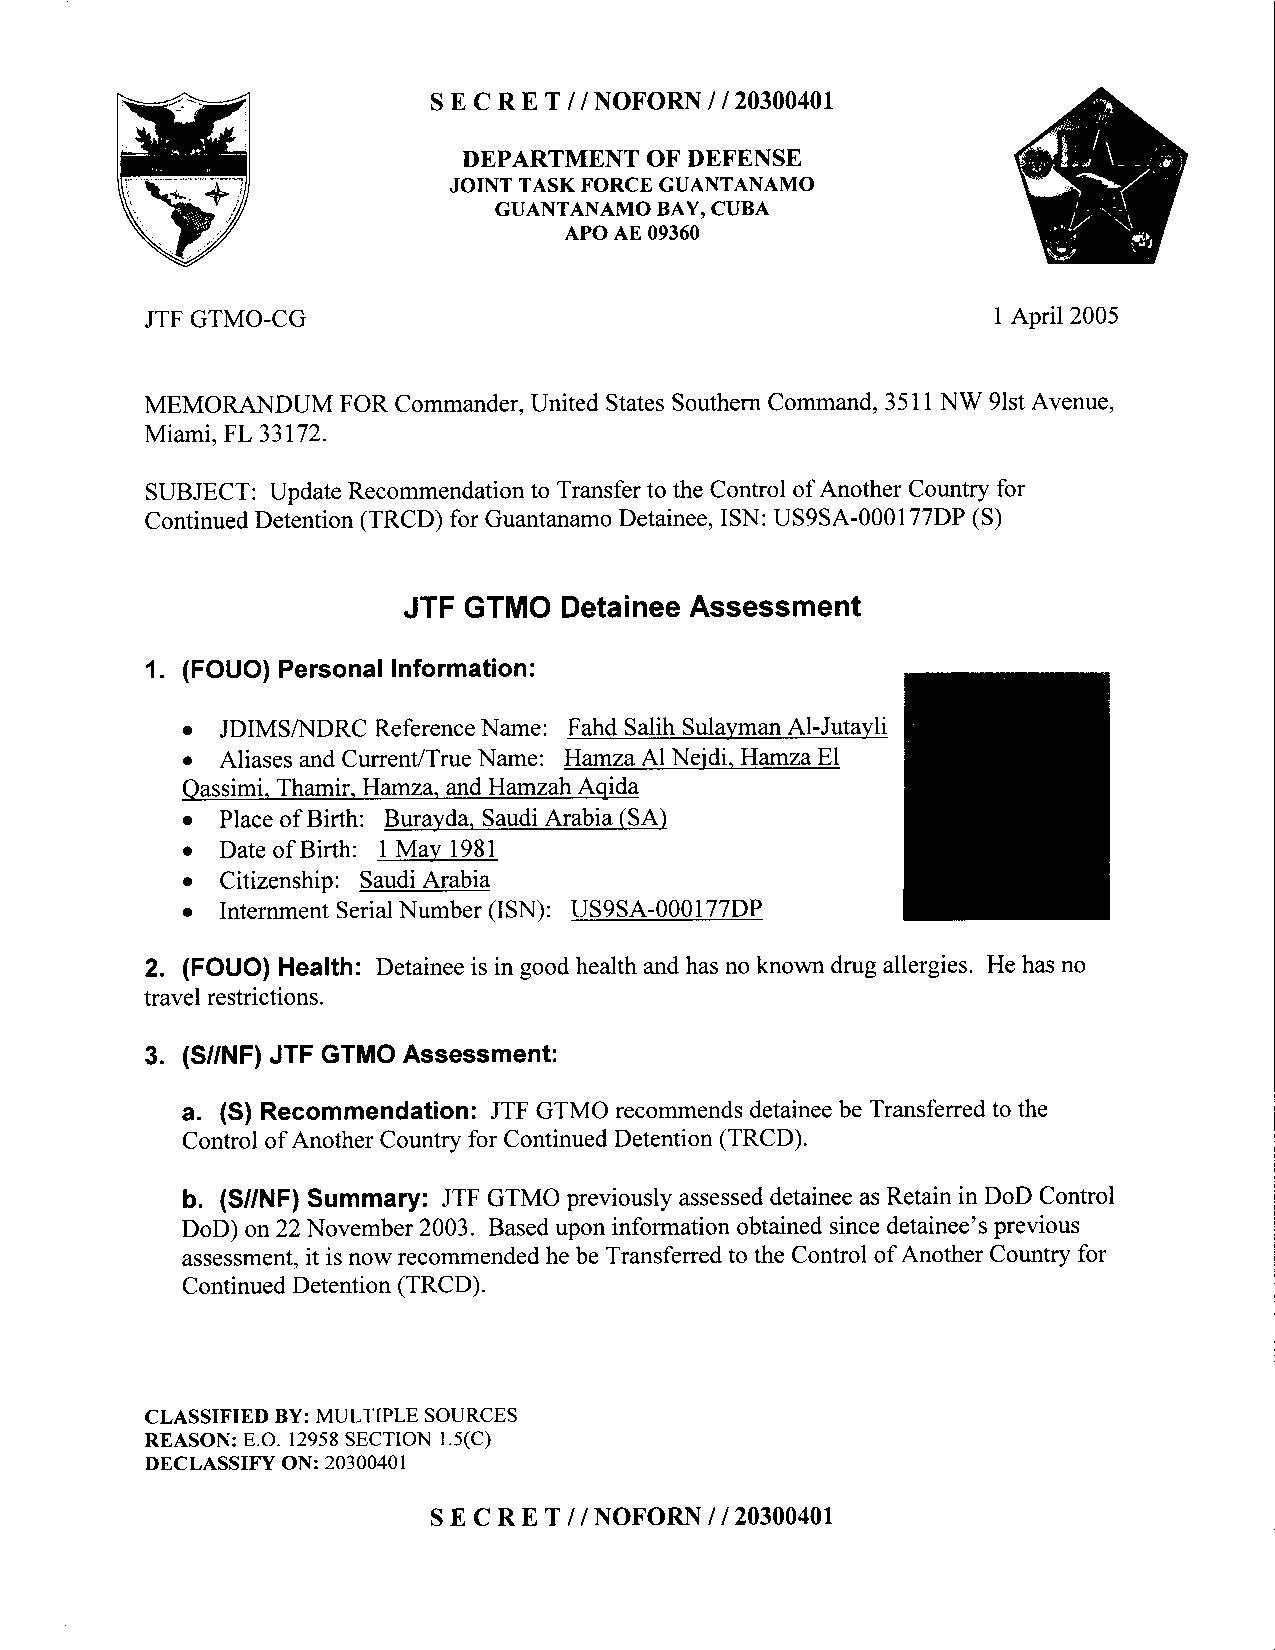 ISN 177's Guantanamo detainee assessment.pdf